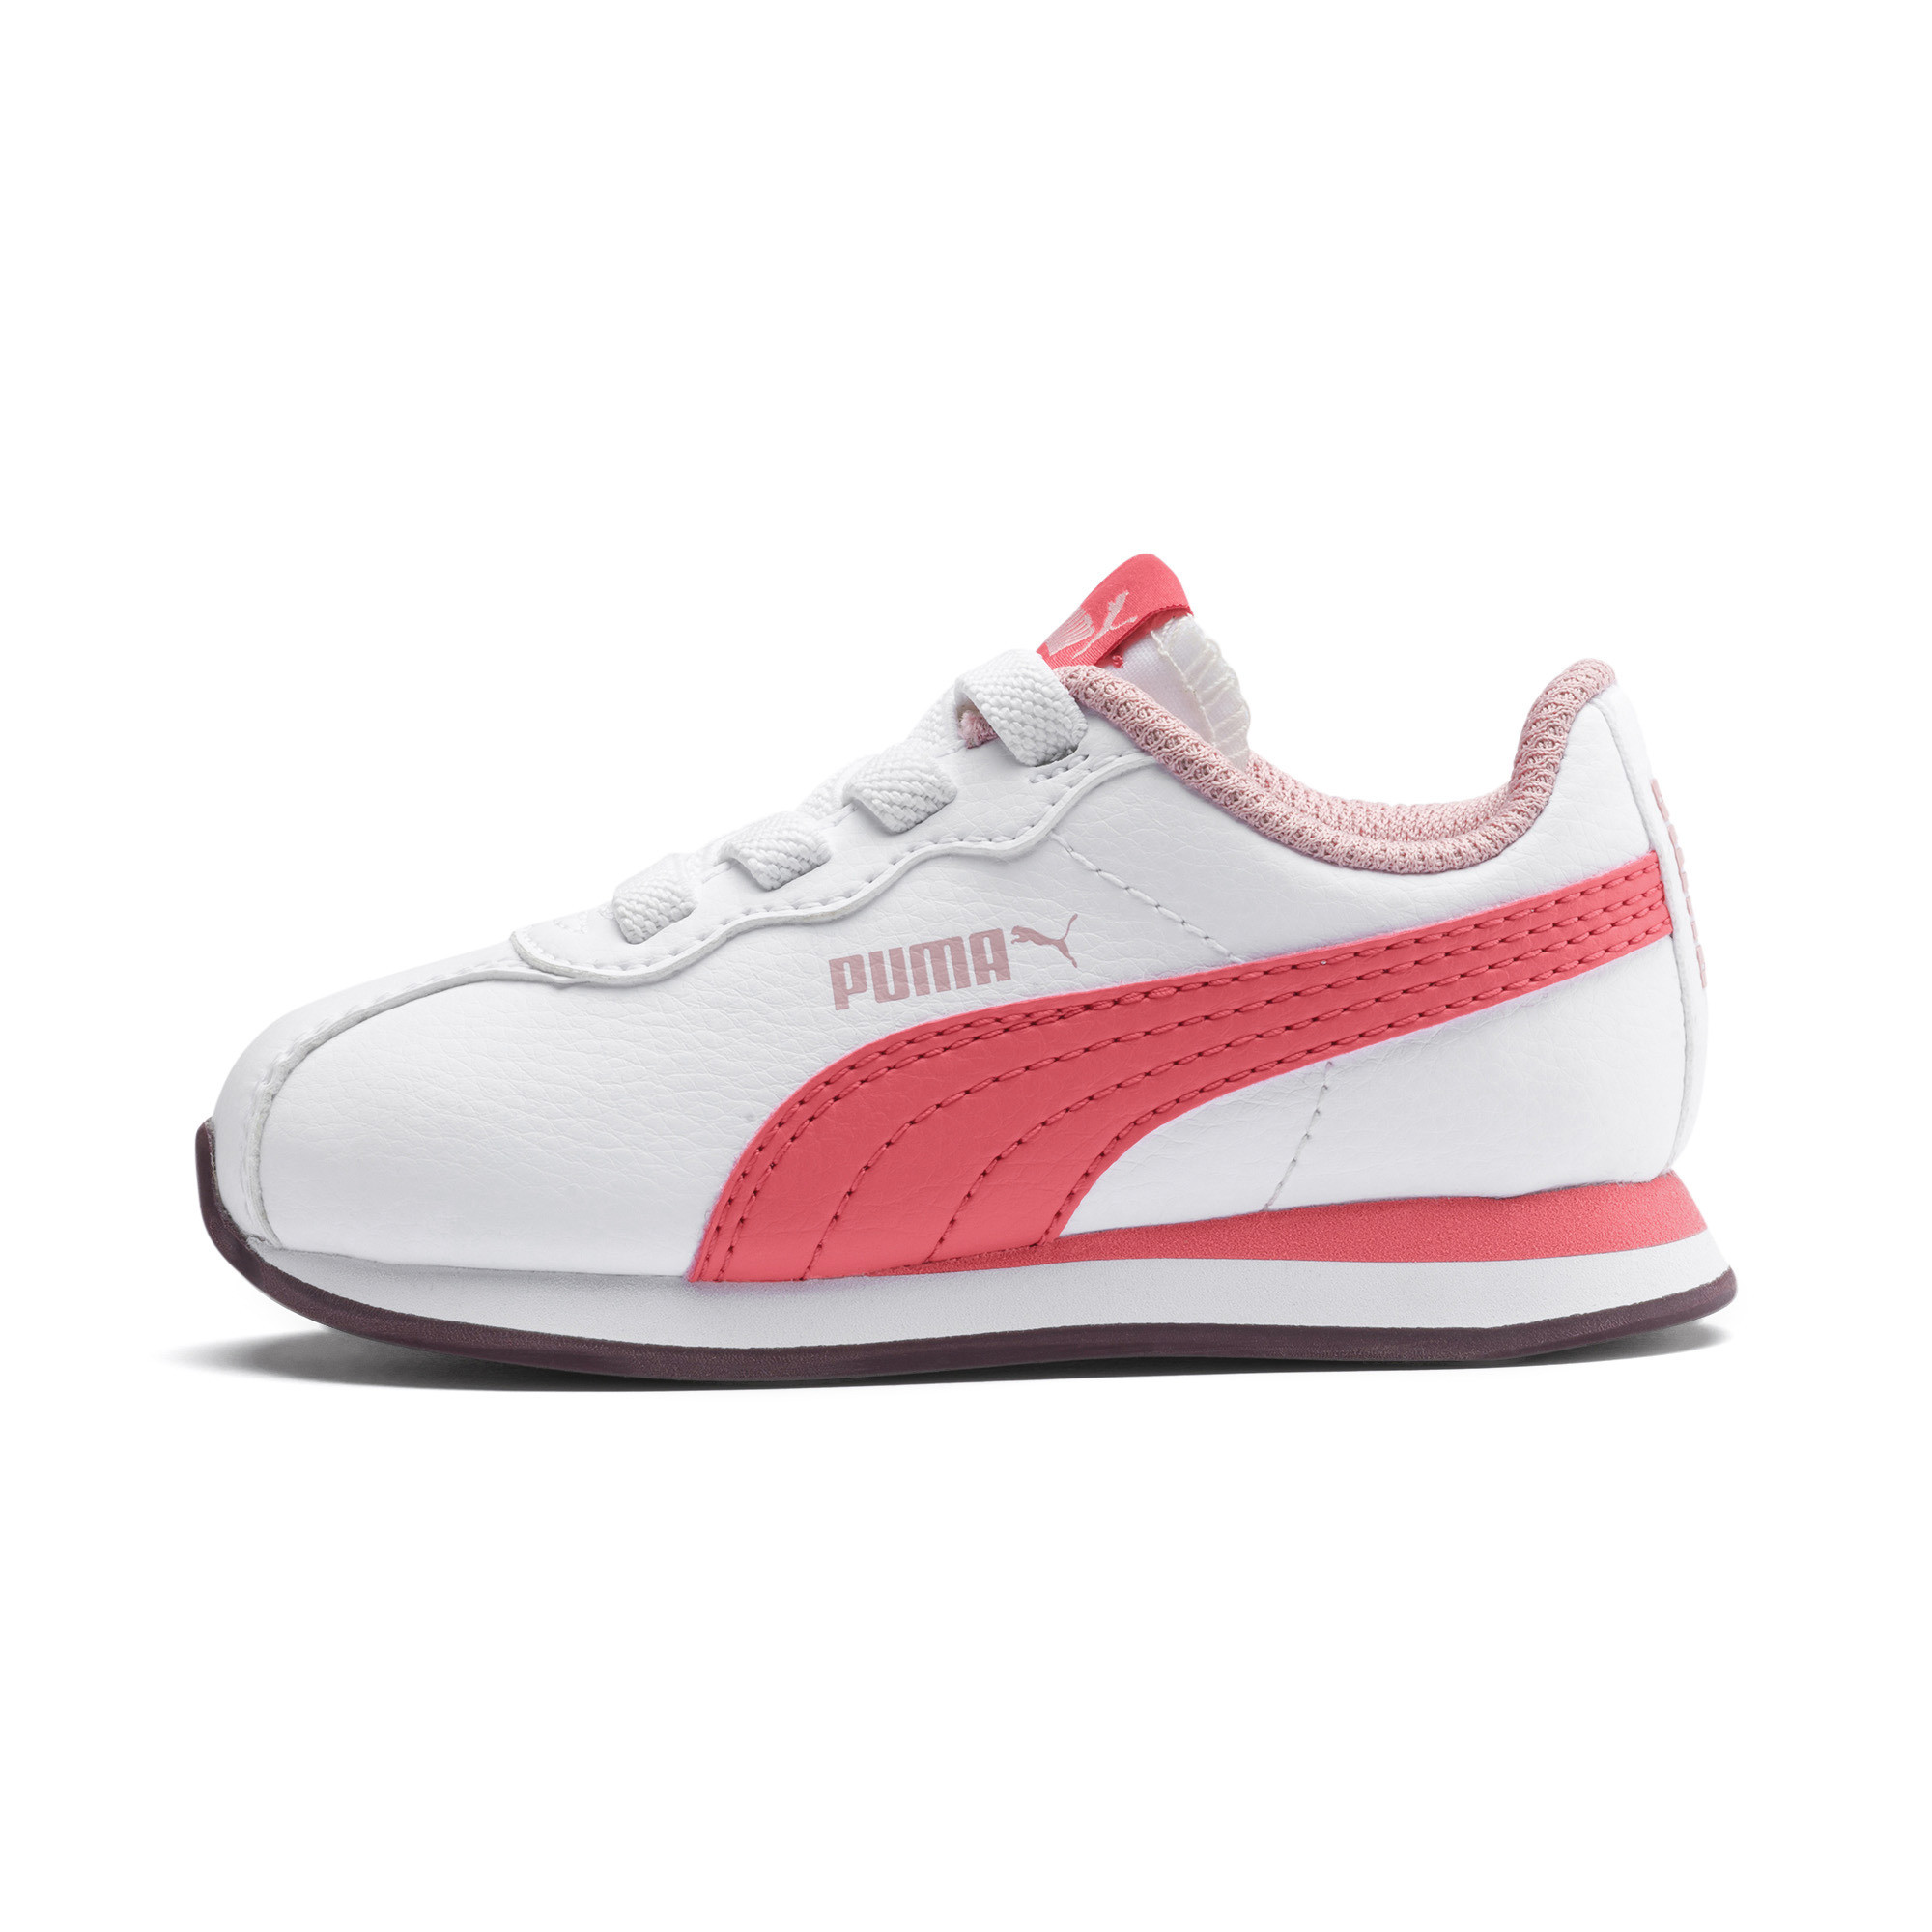 PUMA-Turin-II-AC-Toddler-Shoes-Kids-Shoe-Kids thumbnail 16